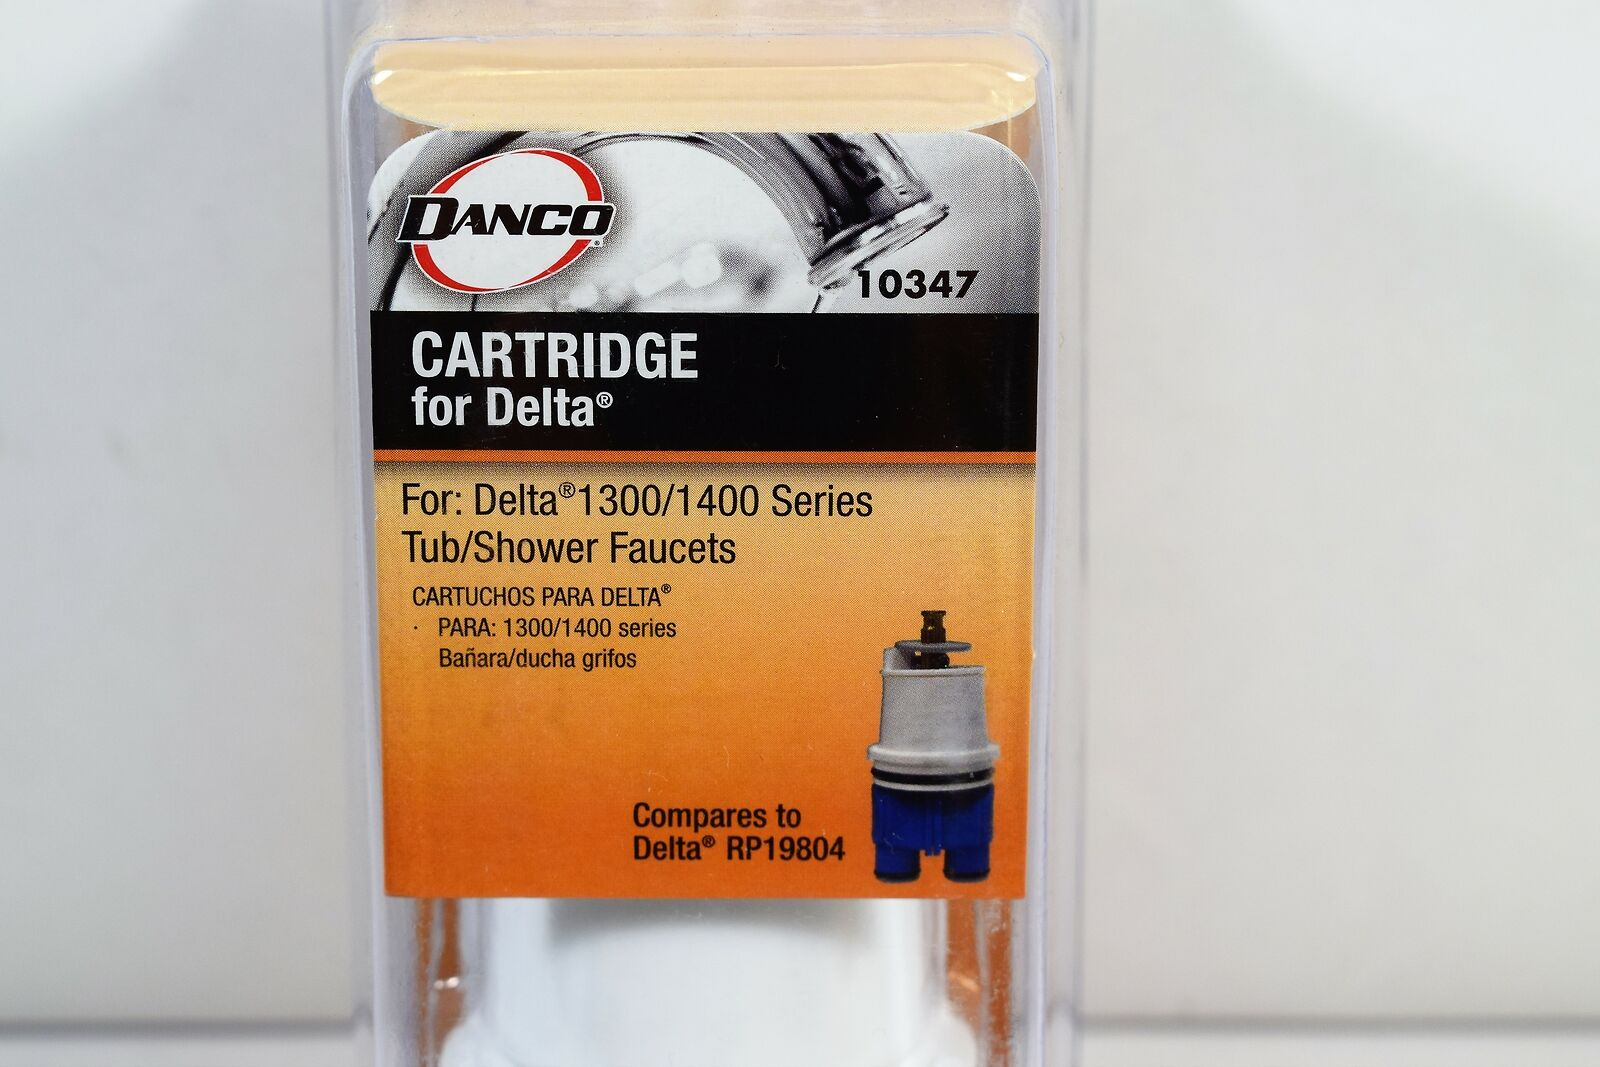 Details About Danco 10347 Replacement Cartridge For Delta Monitor 1300 1400 Series Tub Faucet